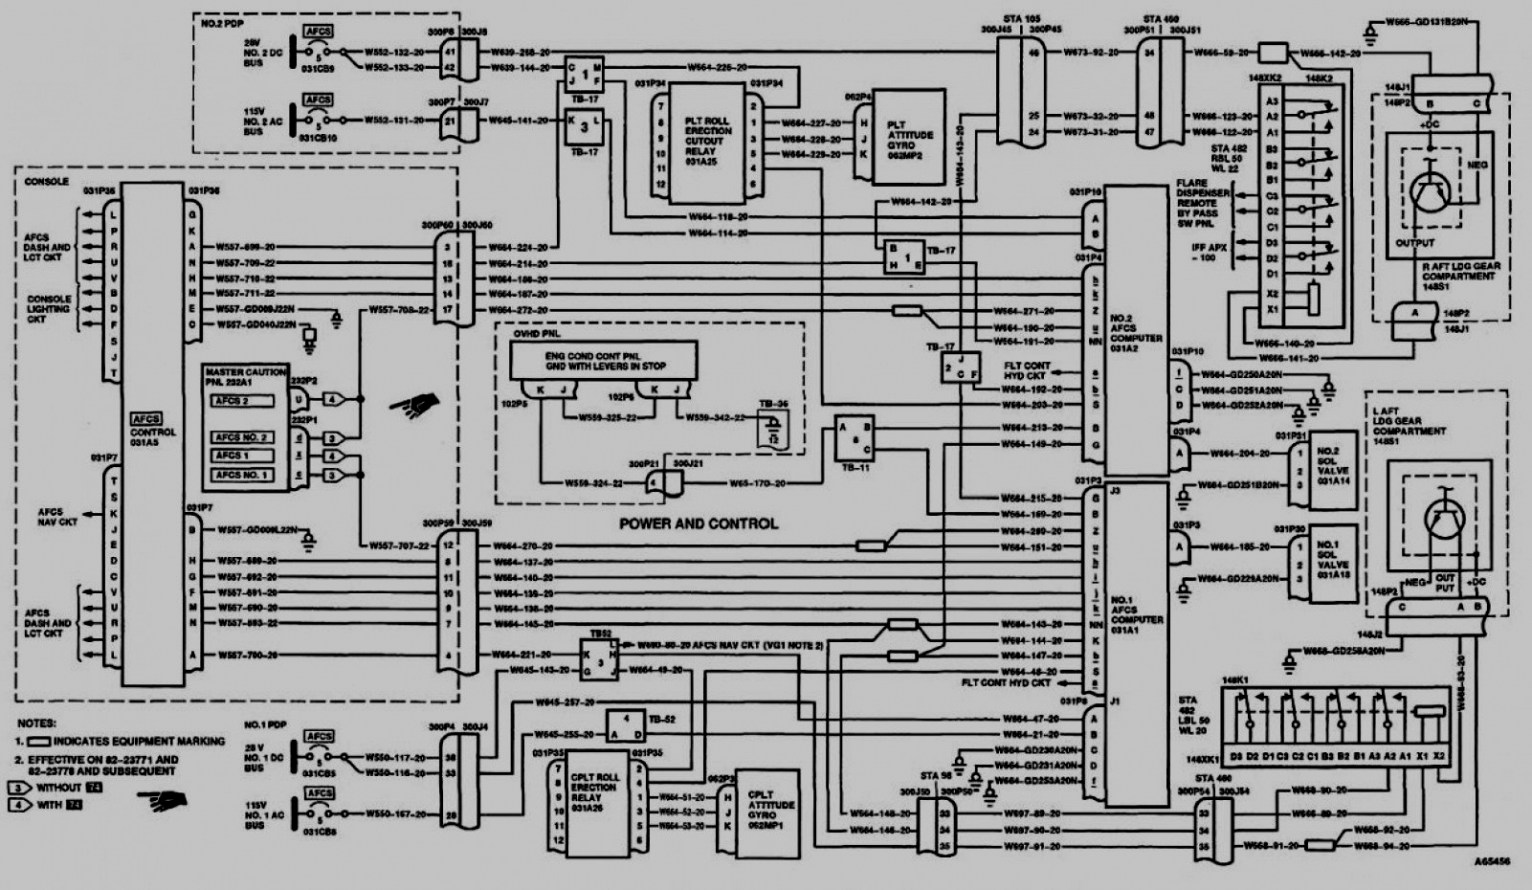 Cpu Wiring Diagram -Wiring Diagram For Gas Gauge | Begeboy Wiring Diagram  SourceBegeboy Wiring Diagram Source